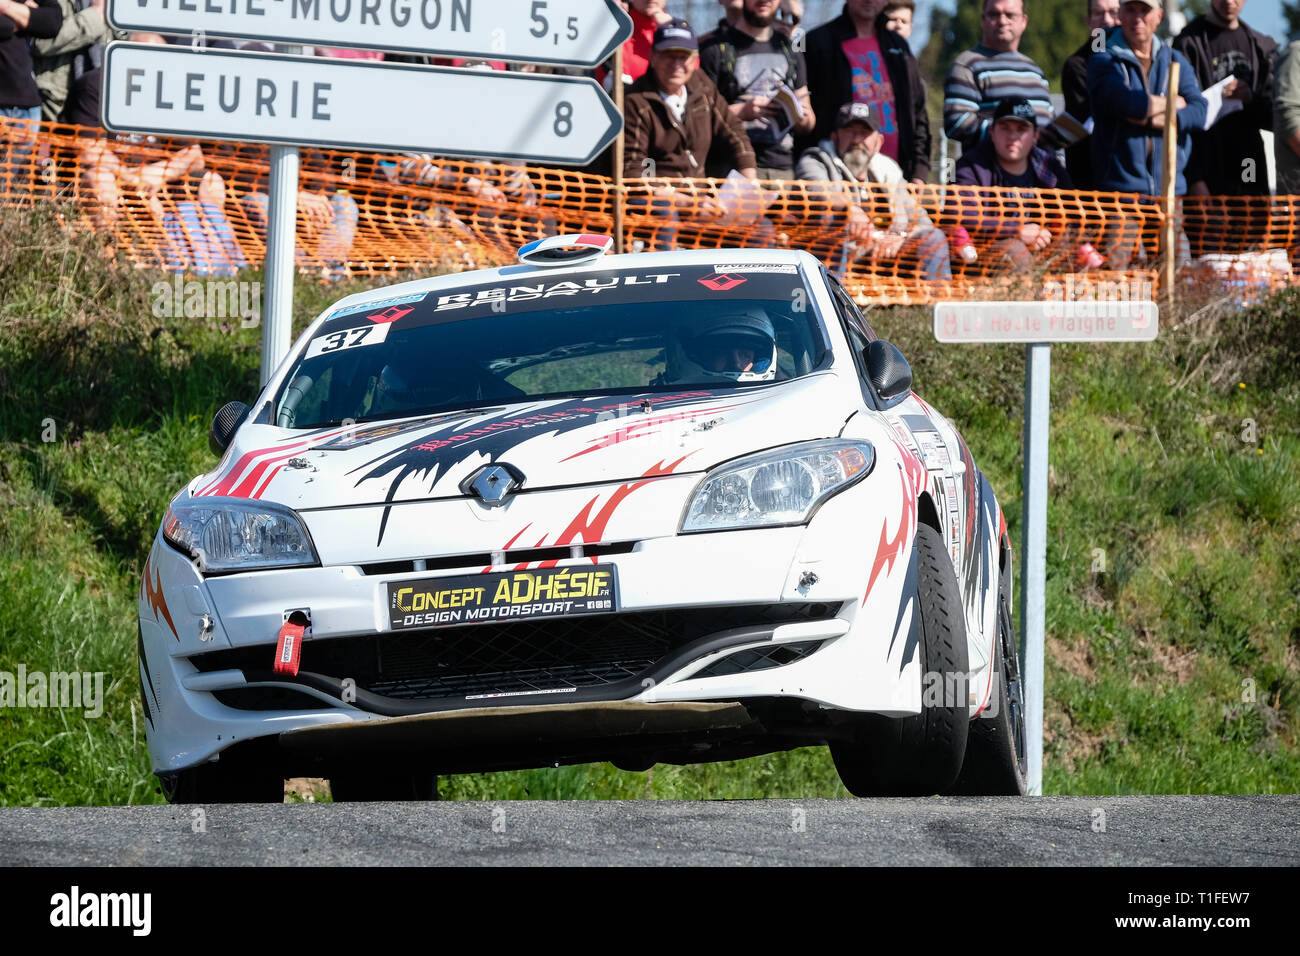 30th edition of the Rallye des Vignes at Régnié-Durette in Beaujolais. Sports car. - Stock Image